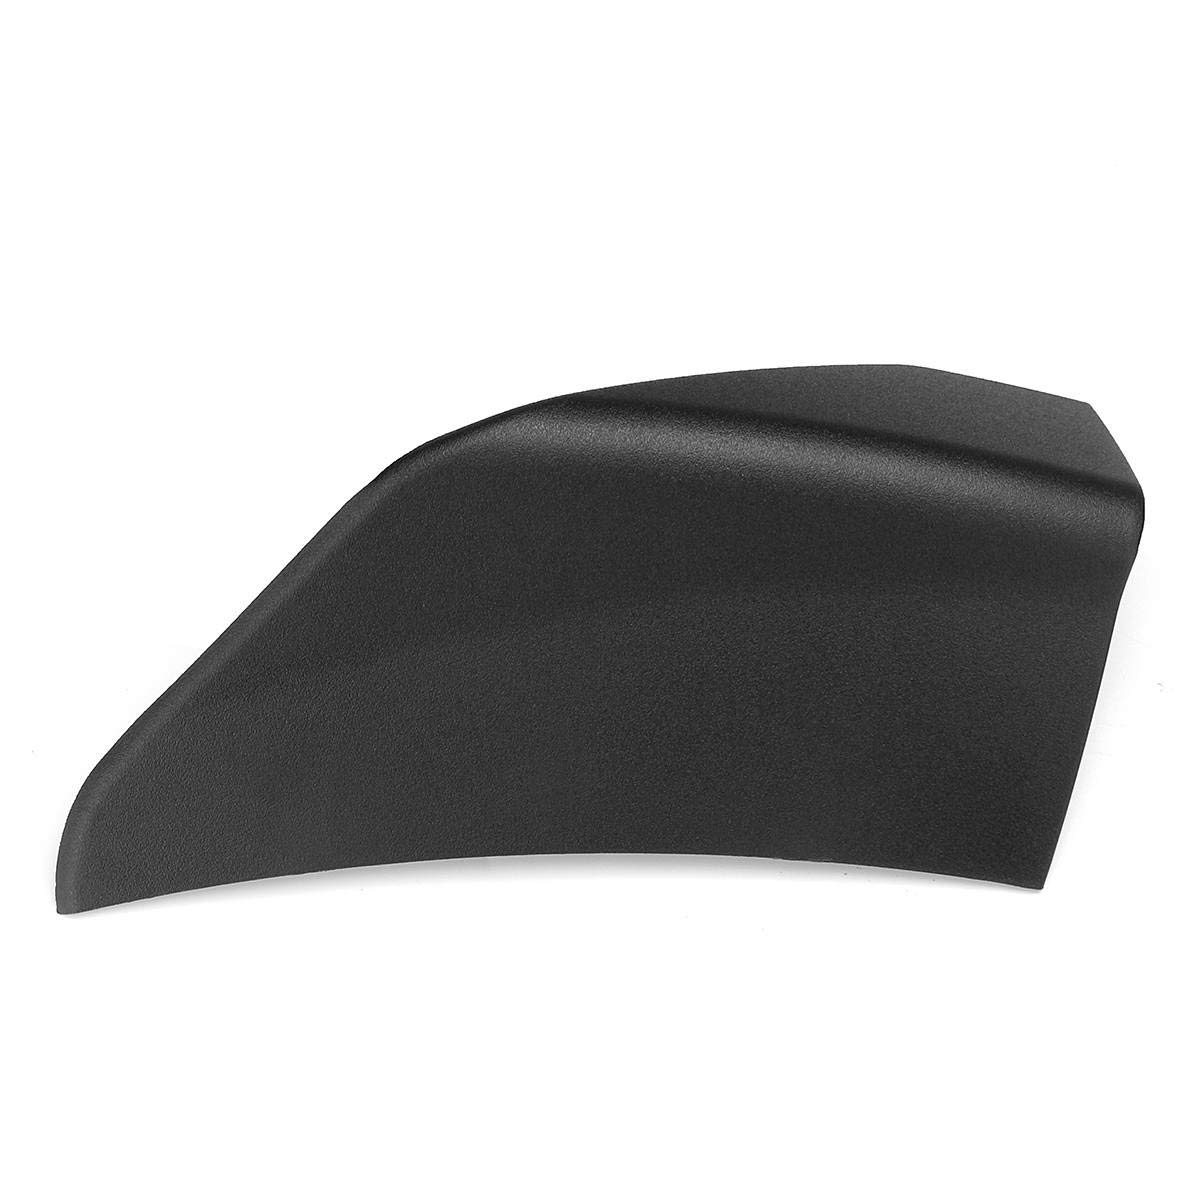 Carvicto For Ford For Mustang Front Chin Spoiler Winglets A Pair Matte Black Front Bumper Lip Front Chin Spoiler Winglets For 2015